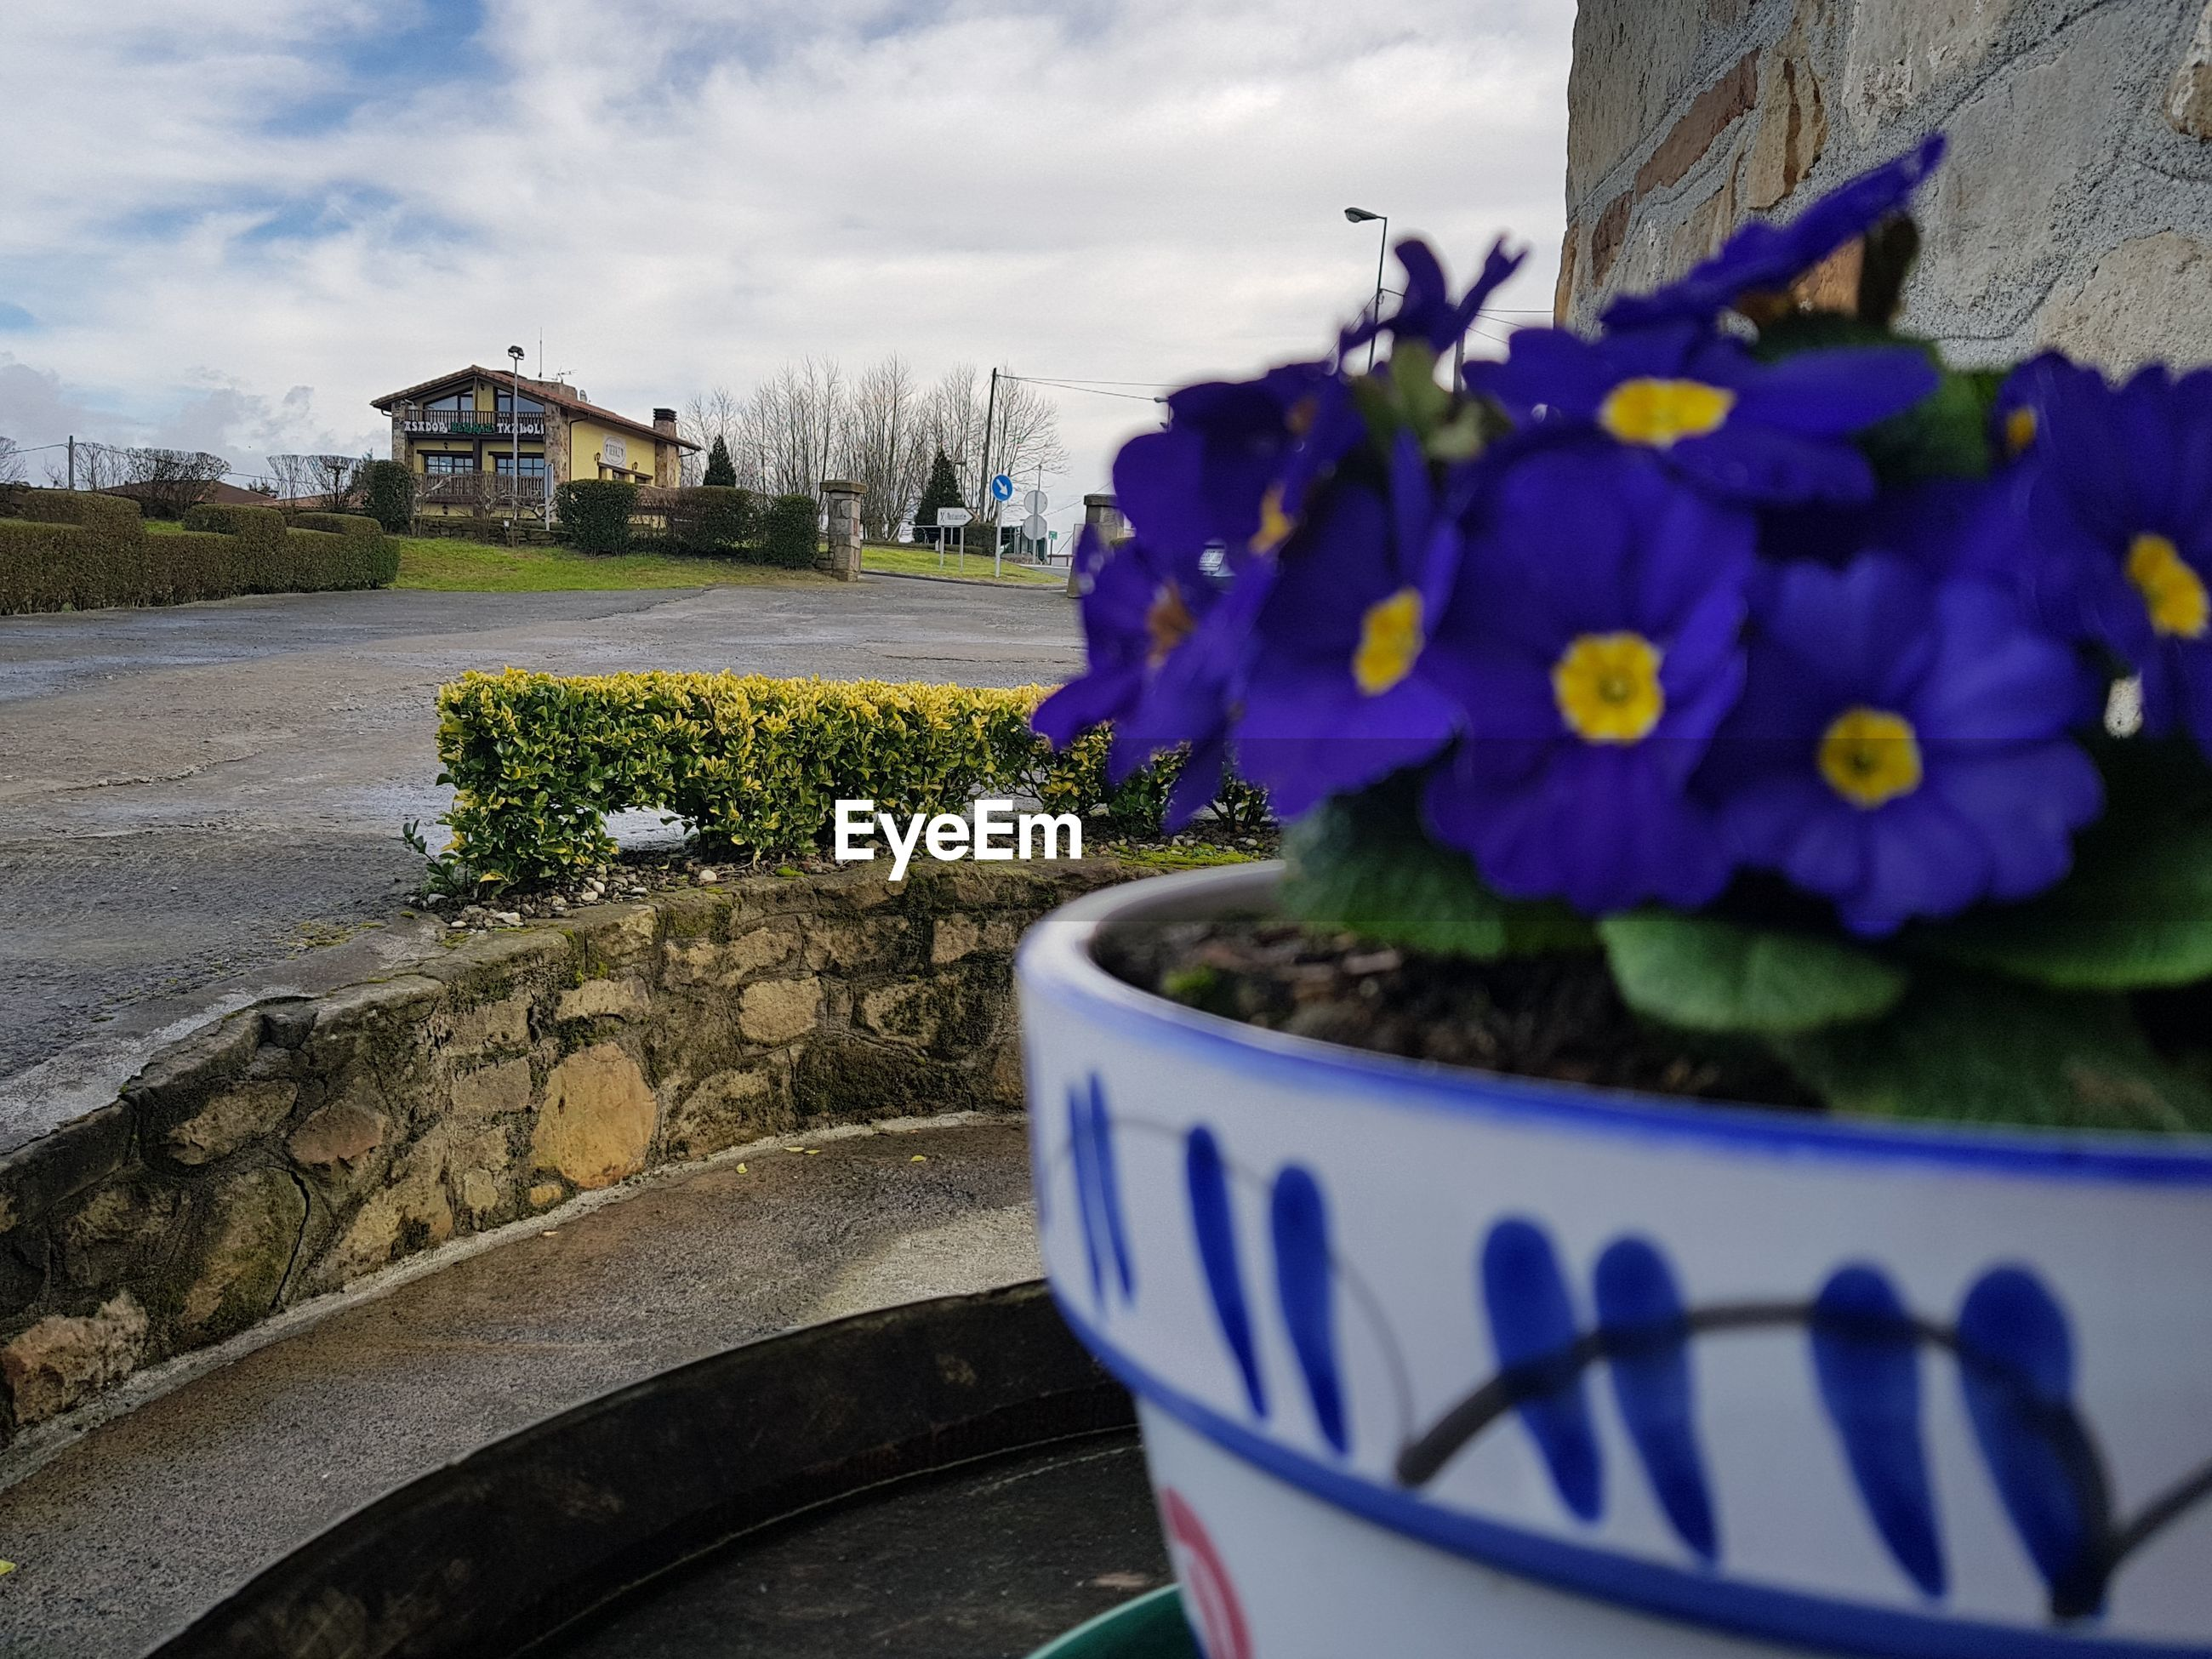 CLOSE-UP OF BLUE FLOWER POT BY BUILDING